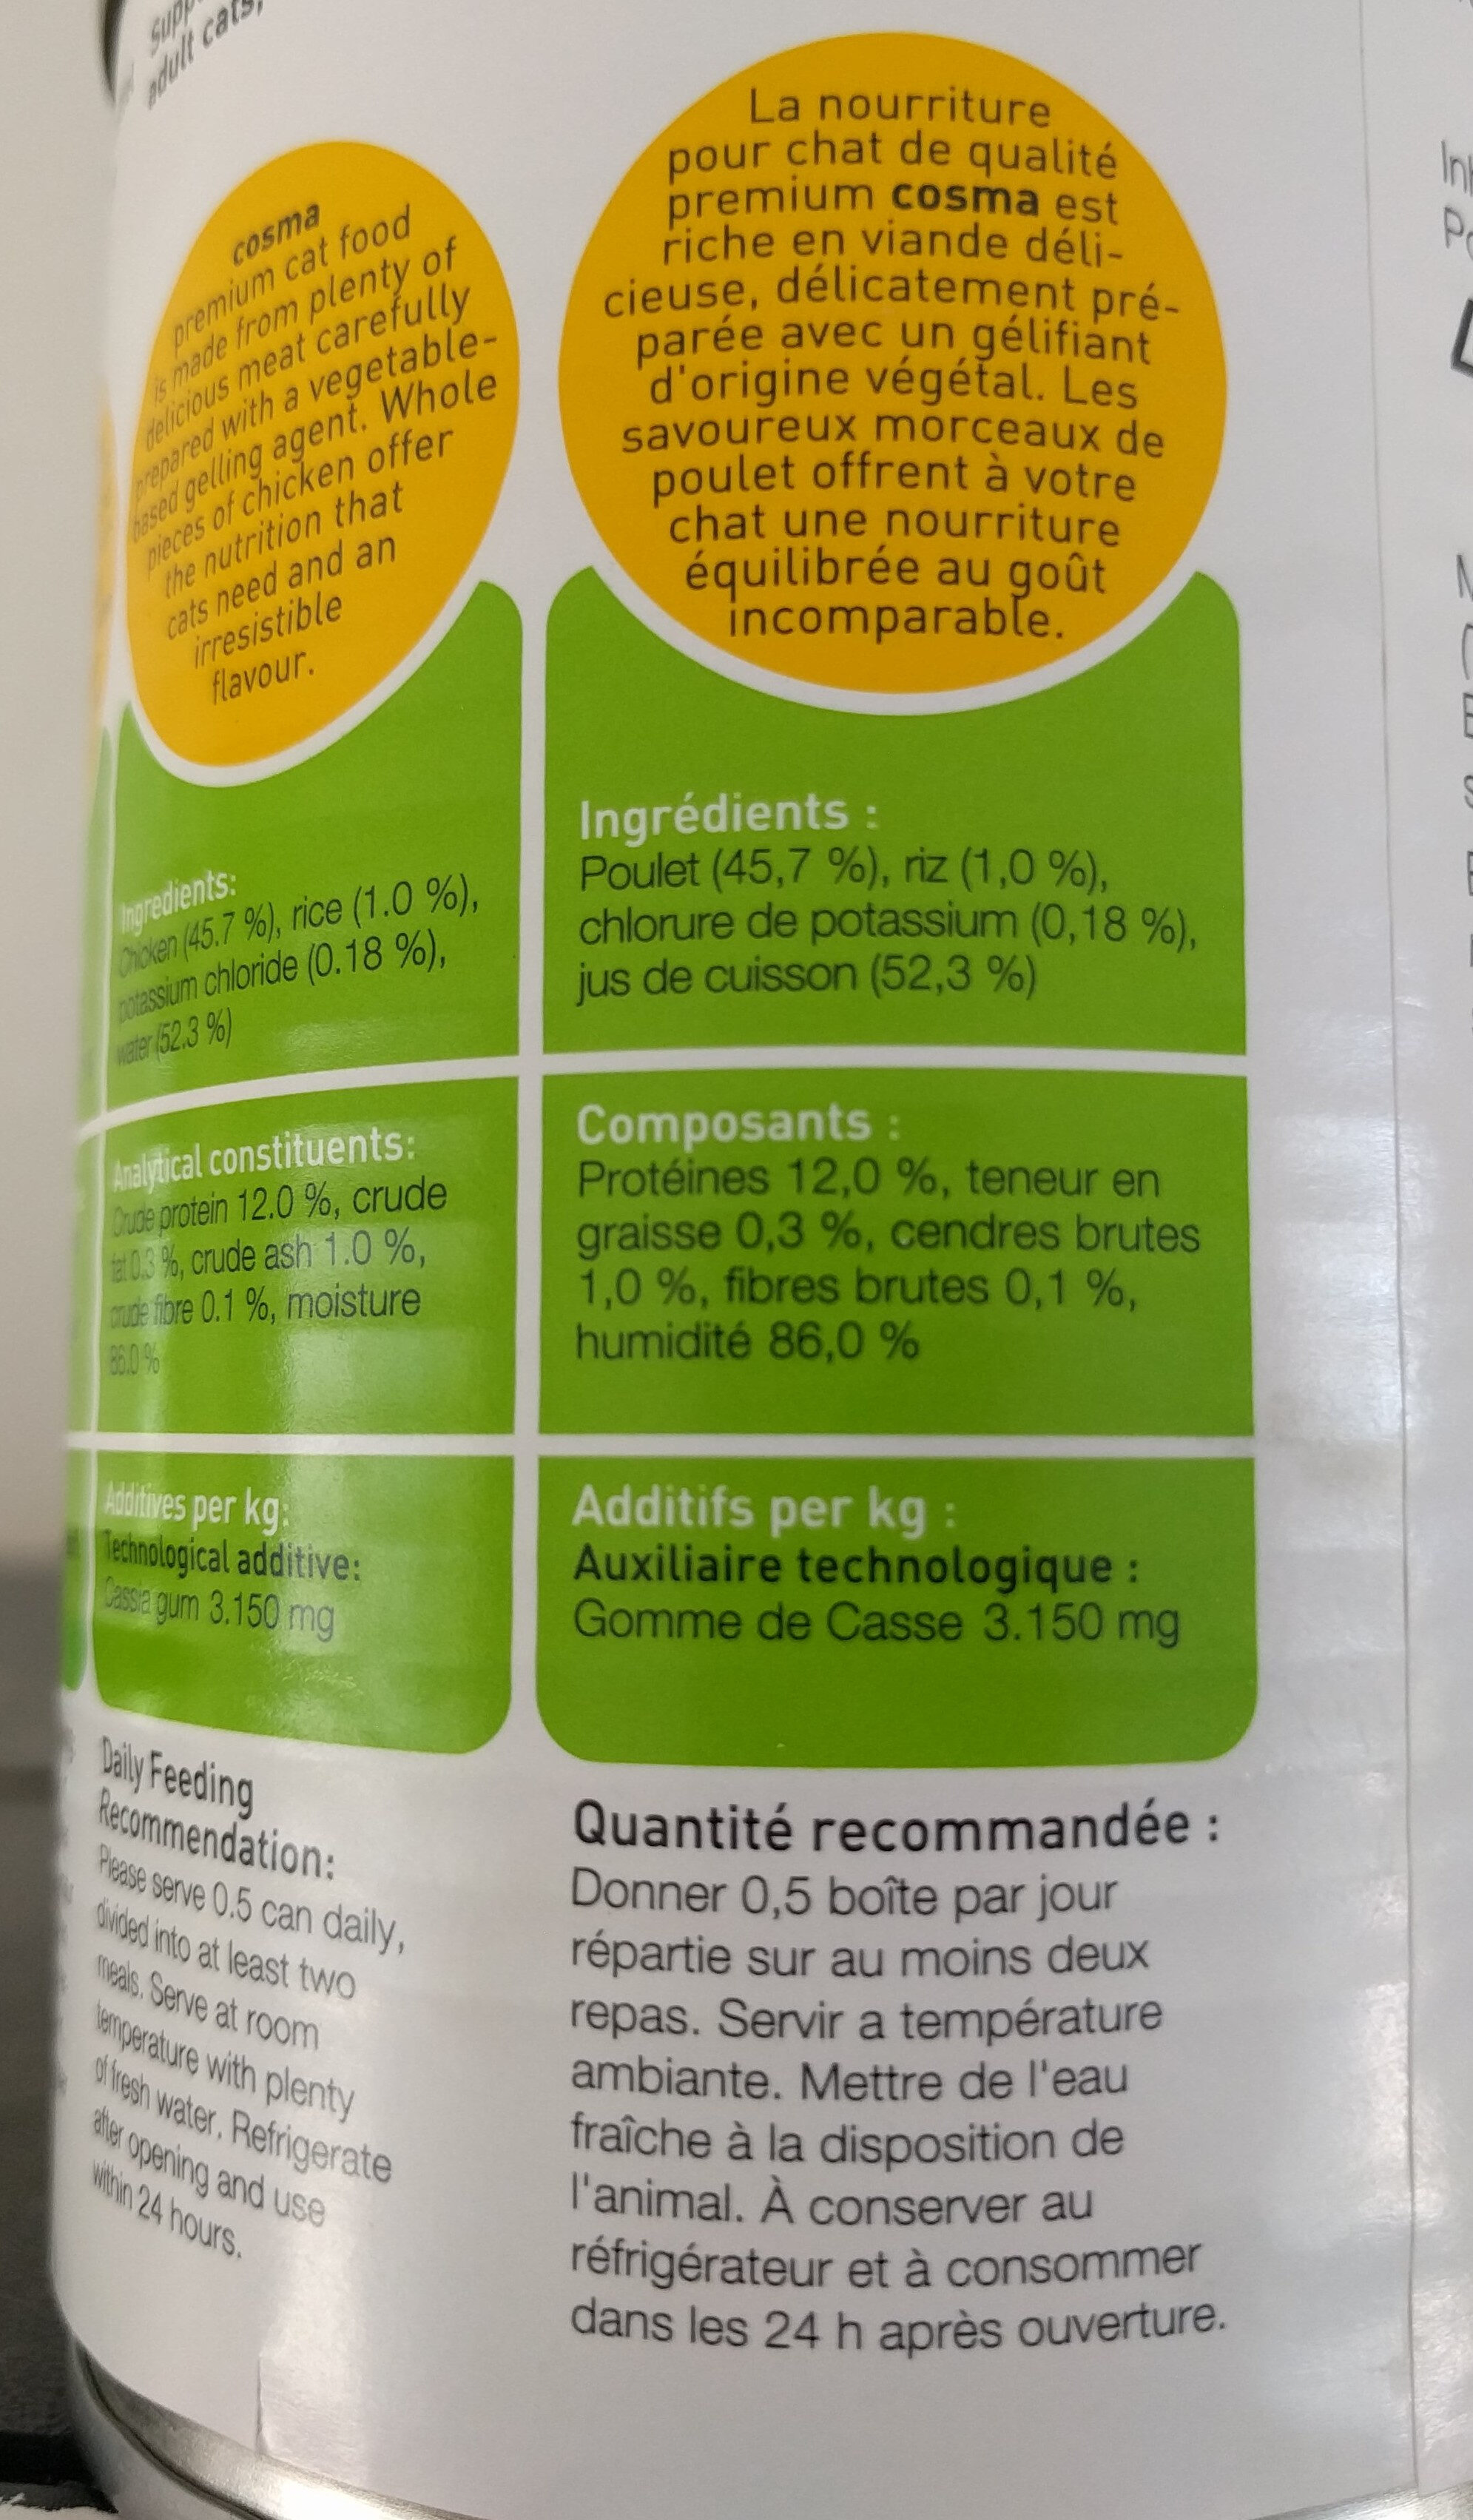 Cosma original poulet en gelée - Ingredients